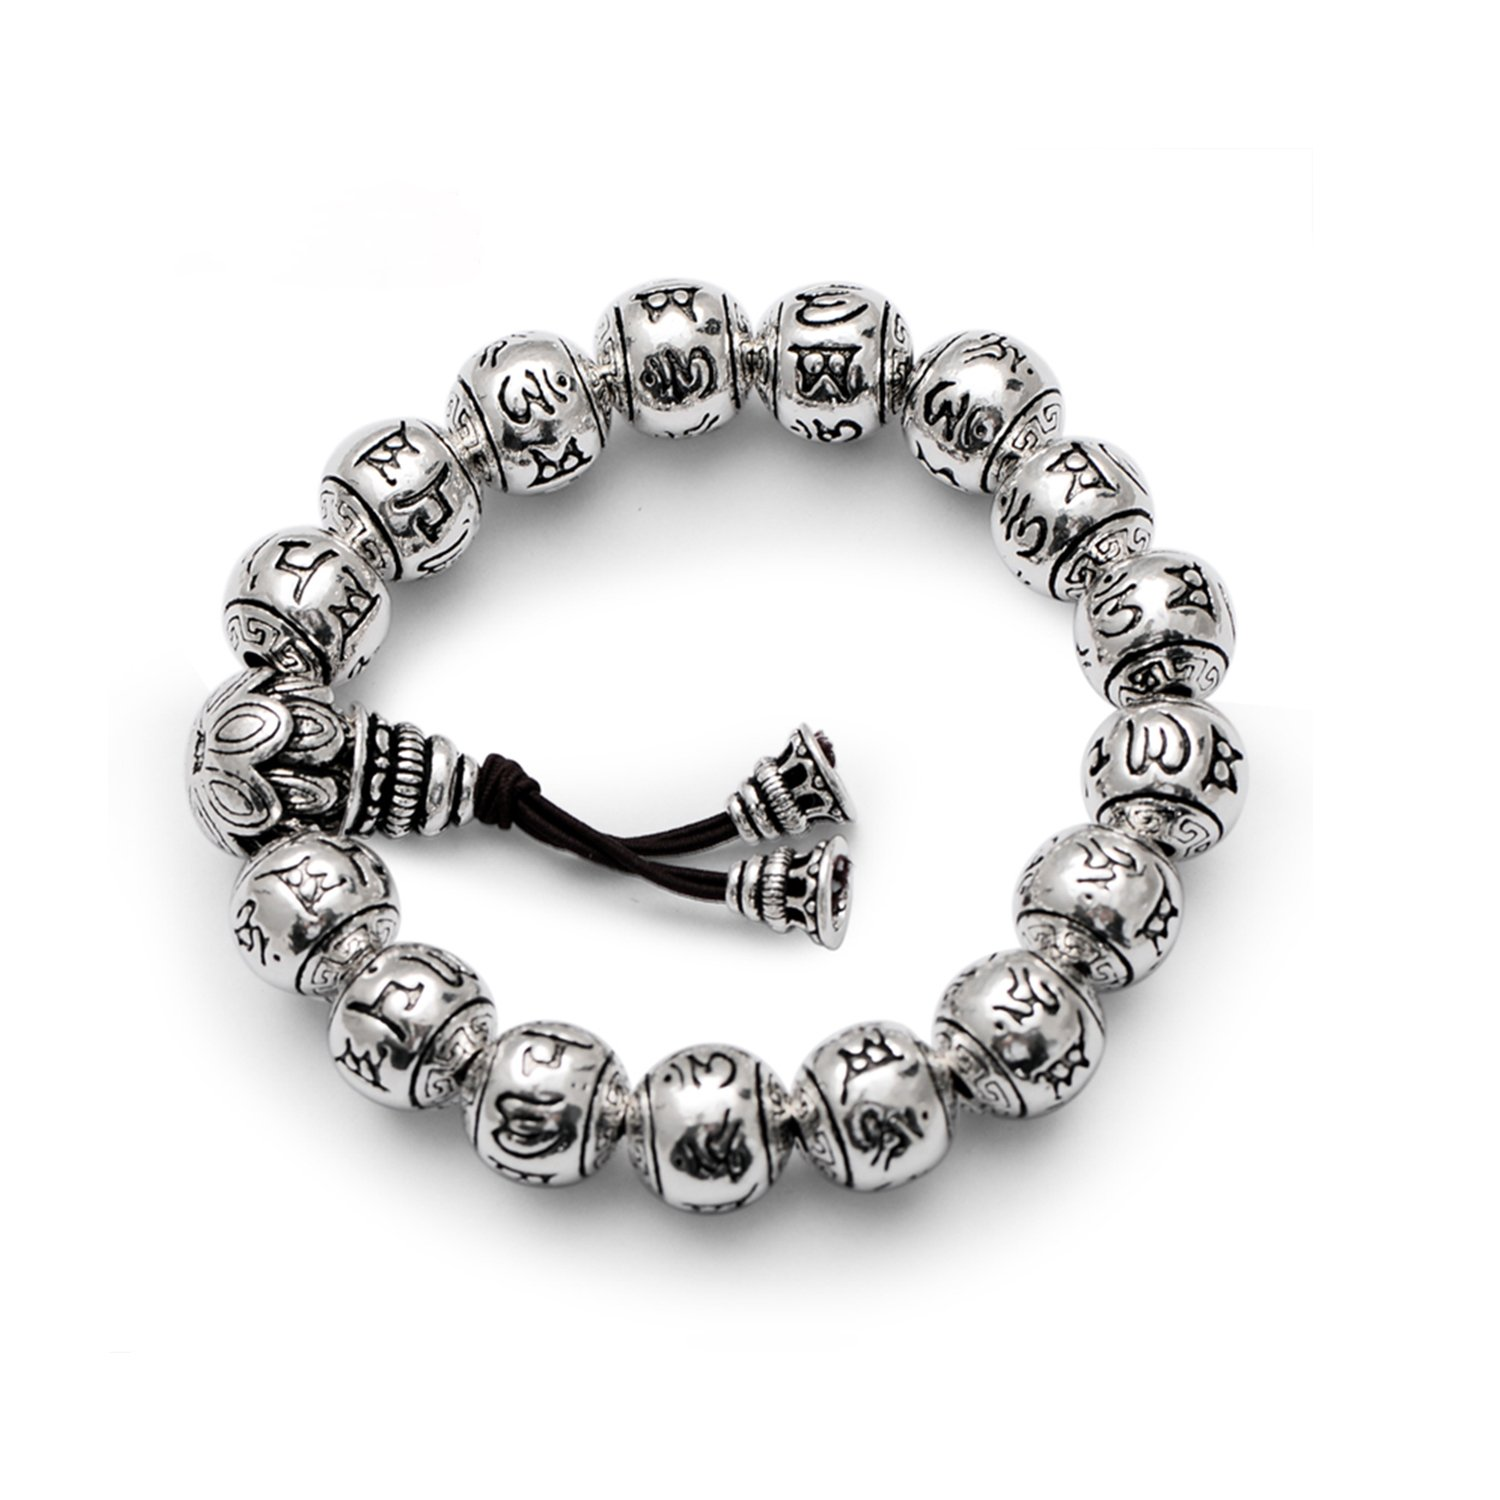 MetJakt Buddhism Mantra Bracelet Solid S999 Sterling Silver Buddha Beads Bracelet for Unisex Vintage Jewelry Stretching 7.5-9inches